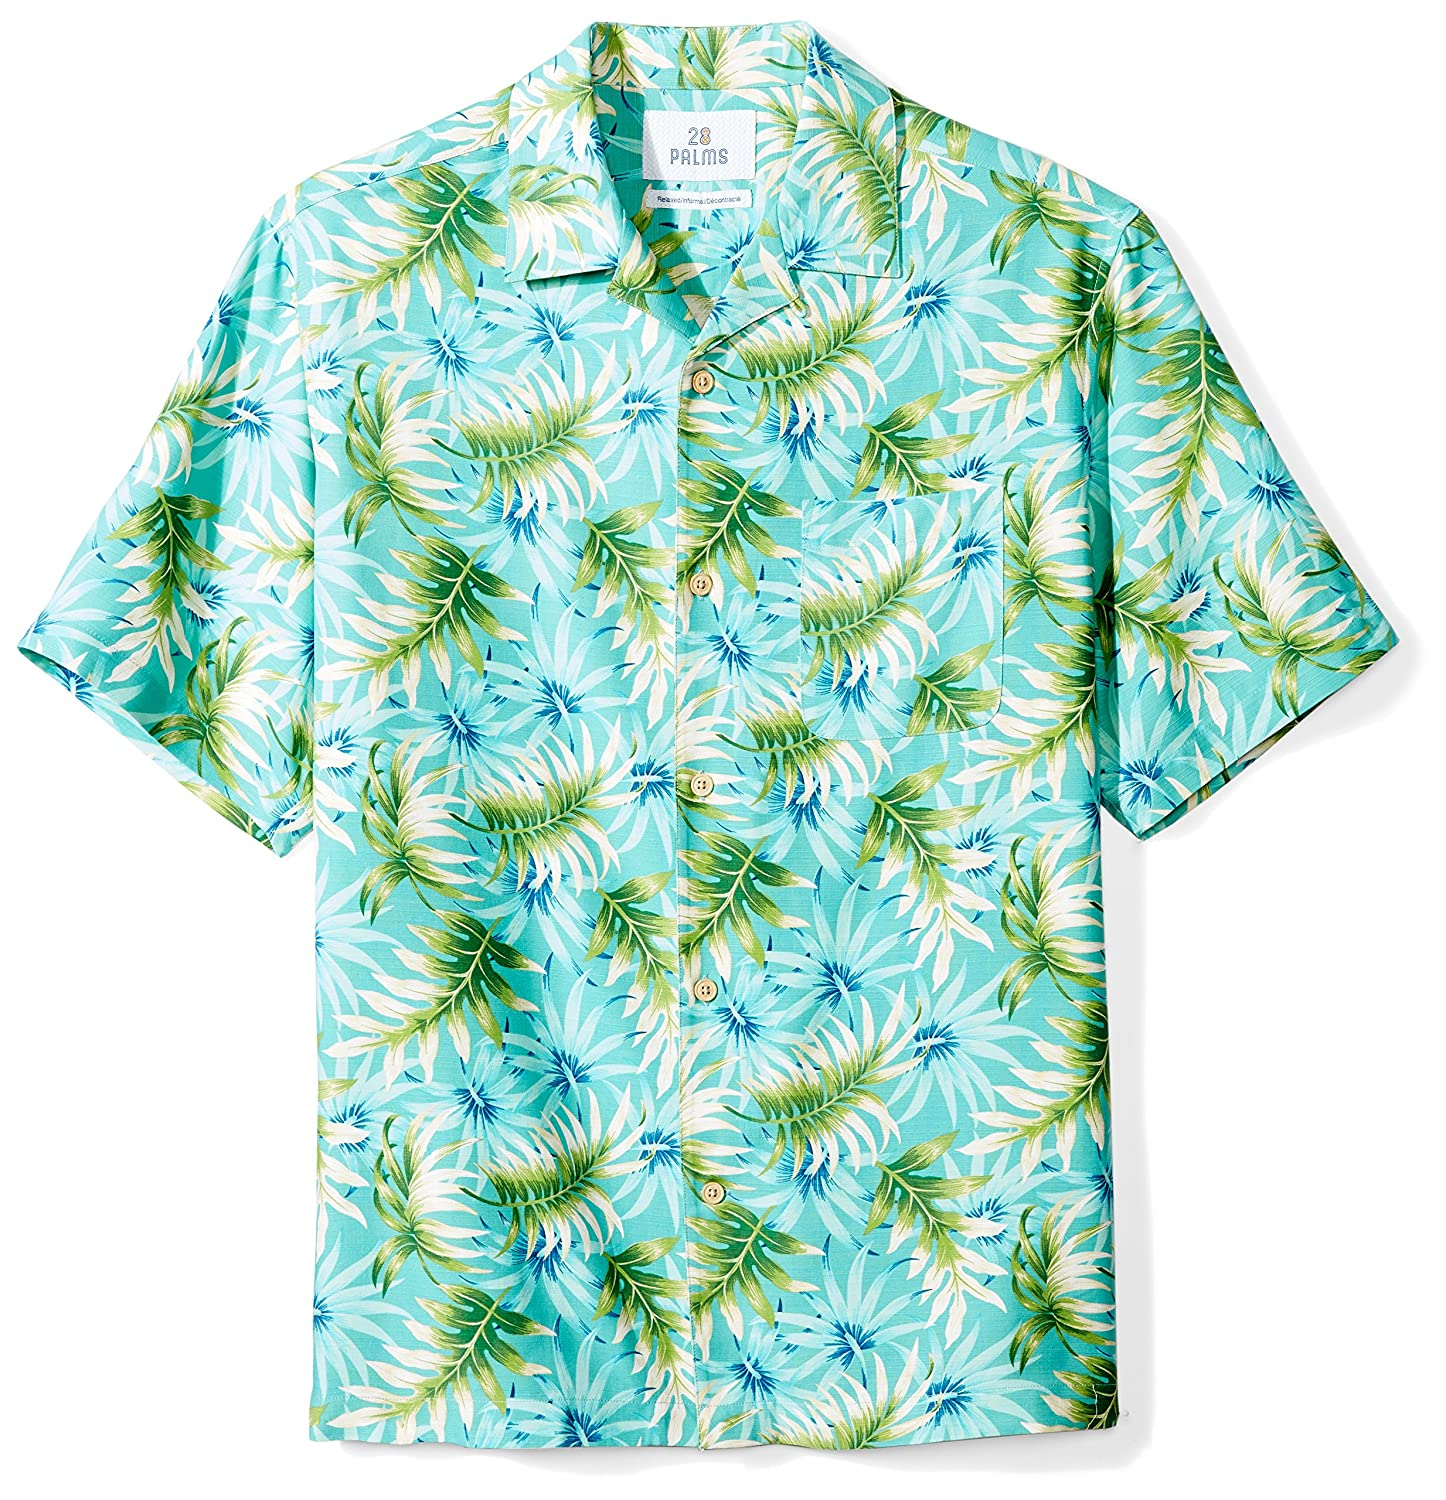 eb5967a96 Amazon.com: Amazon Brand - 28 Palms Men's Relaxed-Fit 100% Textured Silk  Tropical Hawaiian Shirt: Clothing